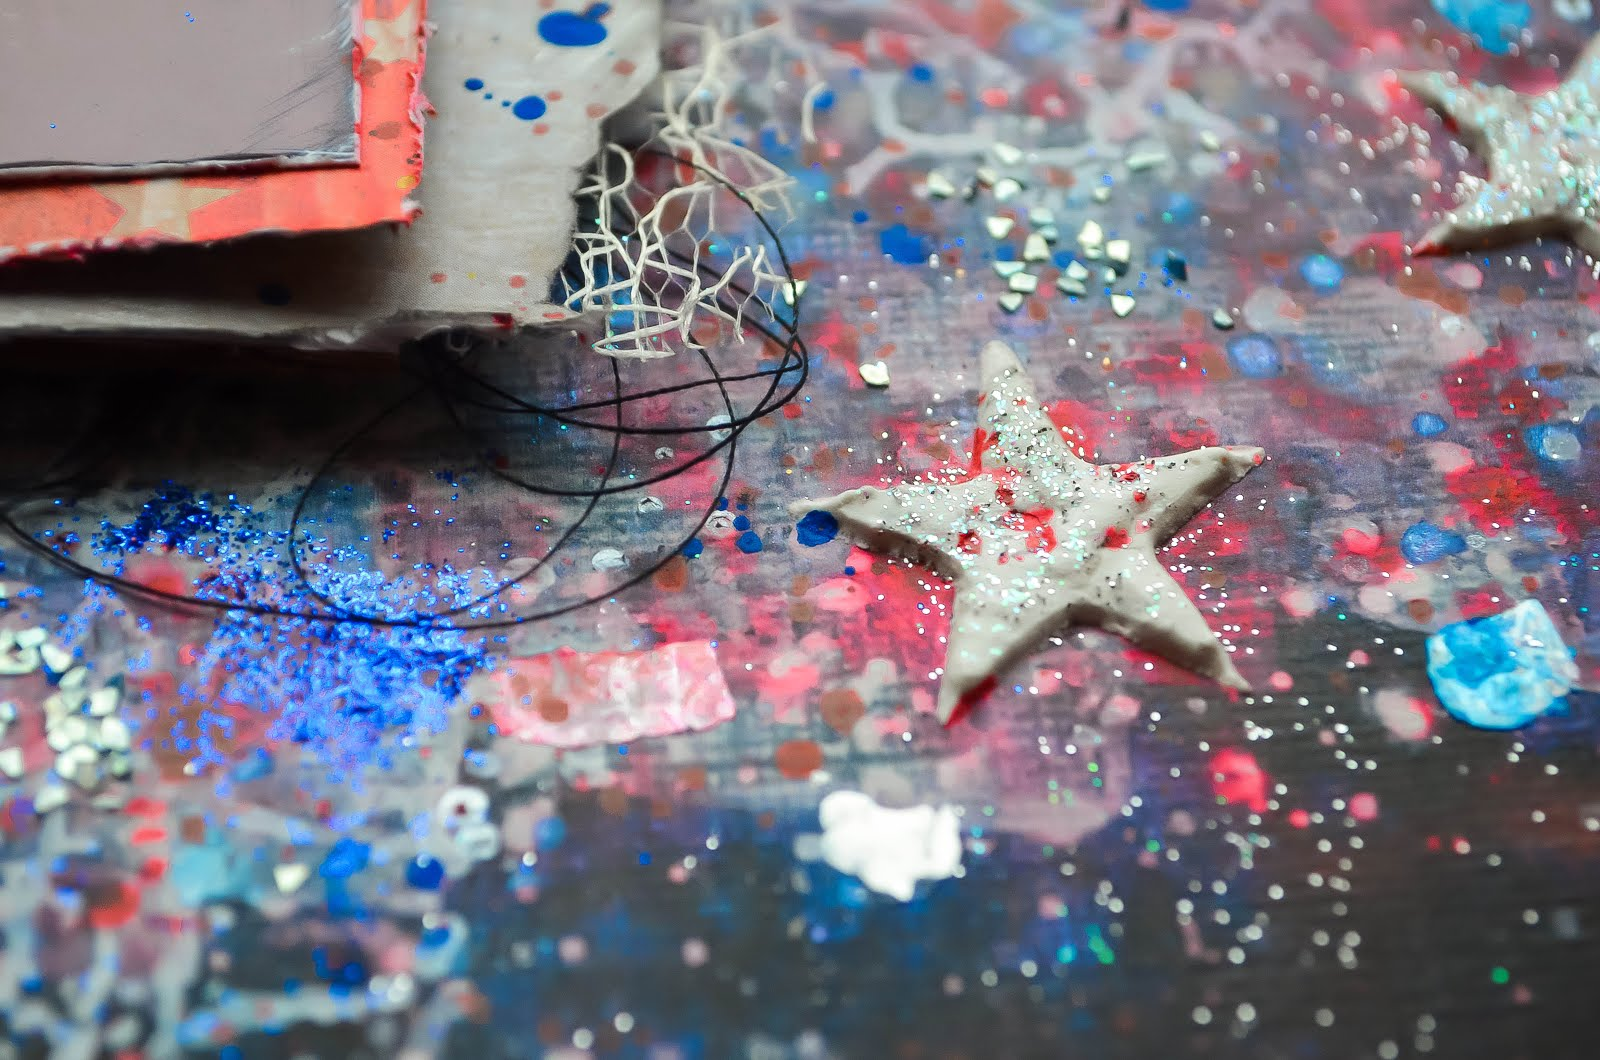 Fourth of July/Independence Day fireworks mixed media layout in red, white, and blue using texture paste and chipboard stars with encrusted jewel technique, glitter and glass glitter, mica fragments, bakers twine, texture paste and stenciling.